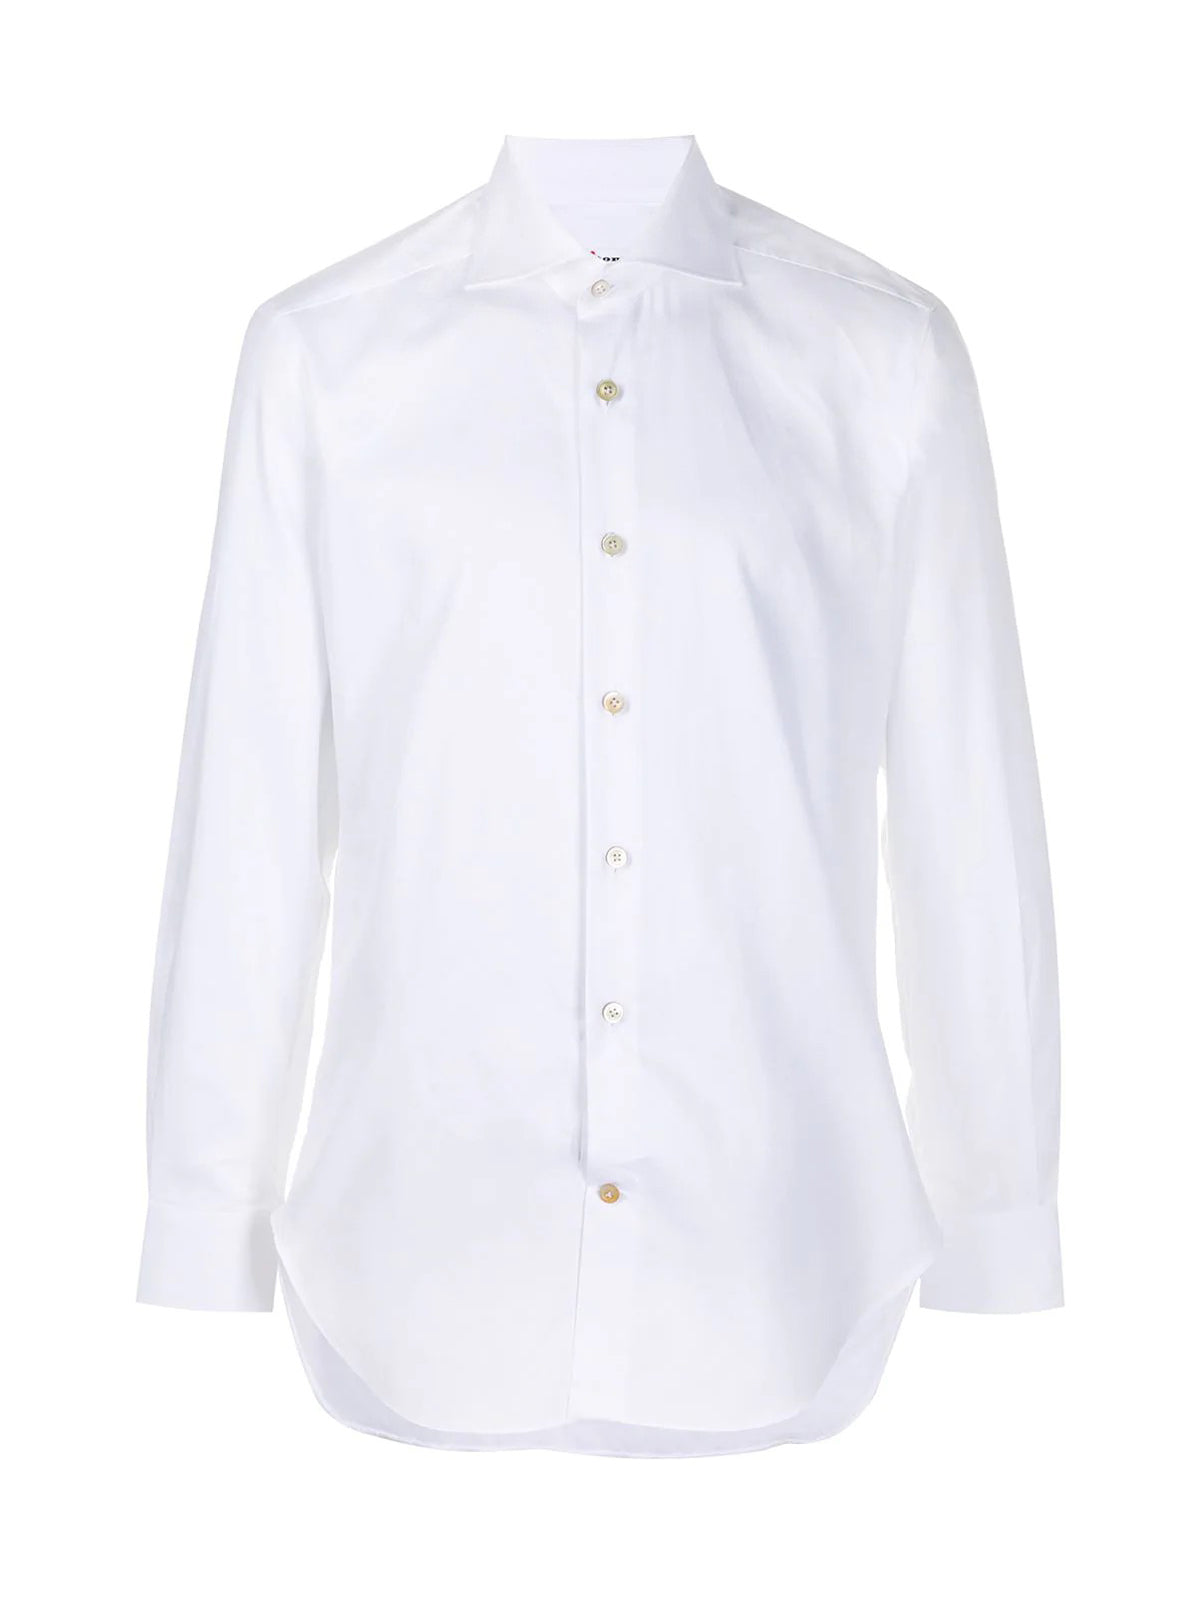 Shirt with French collar